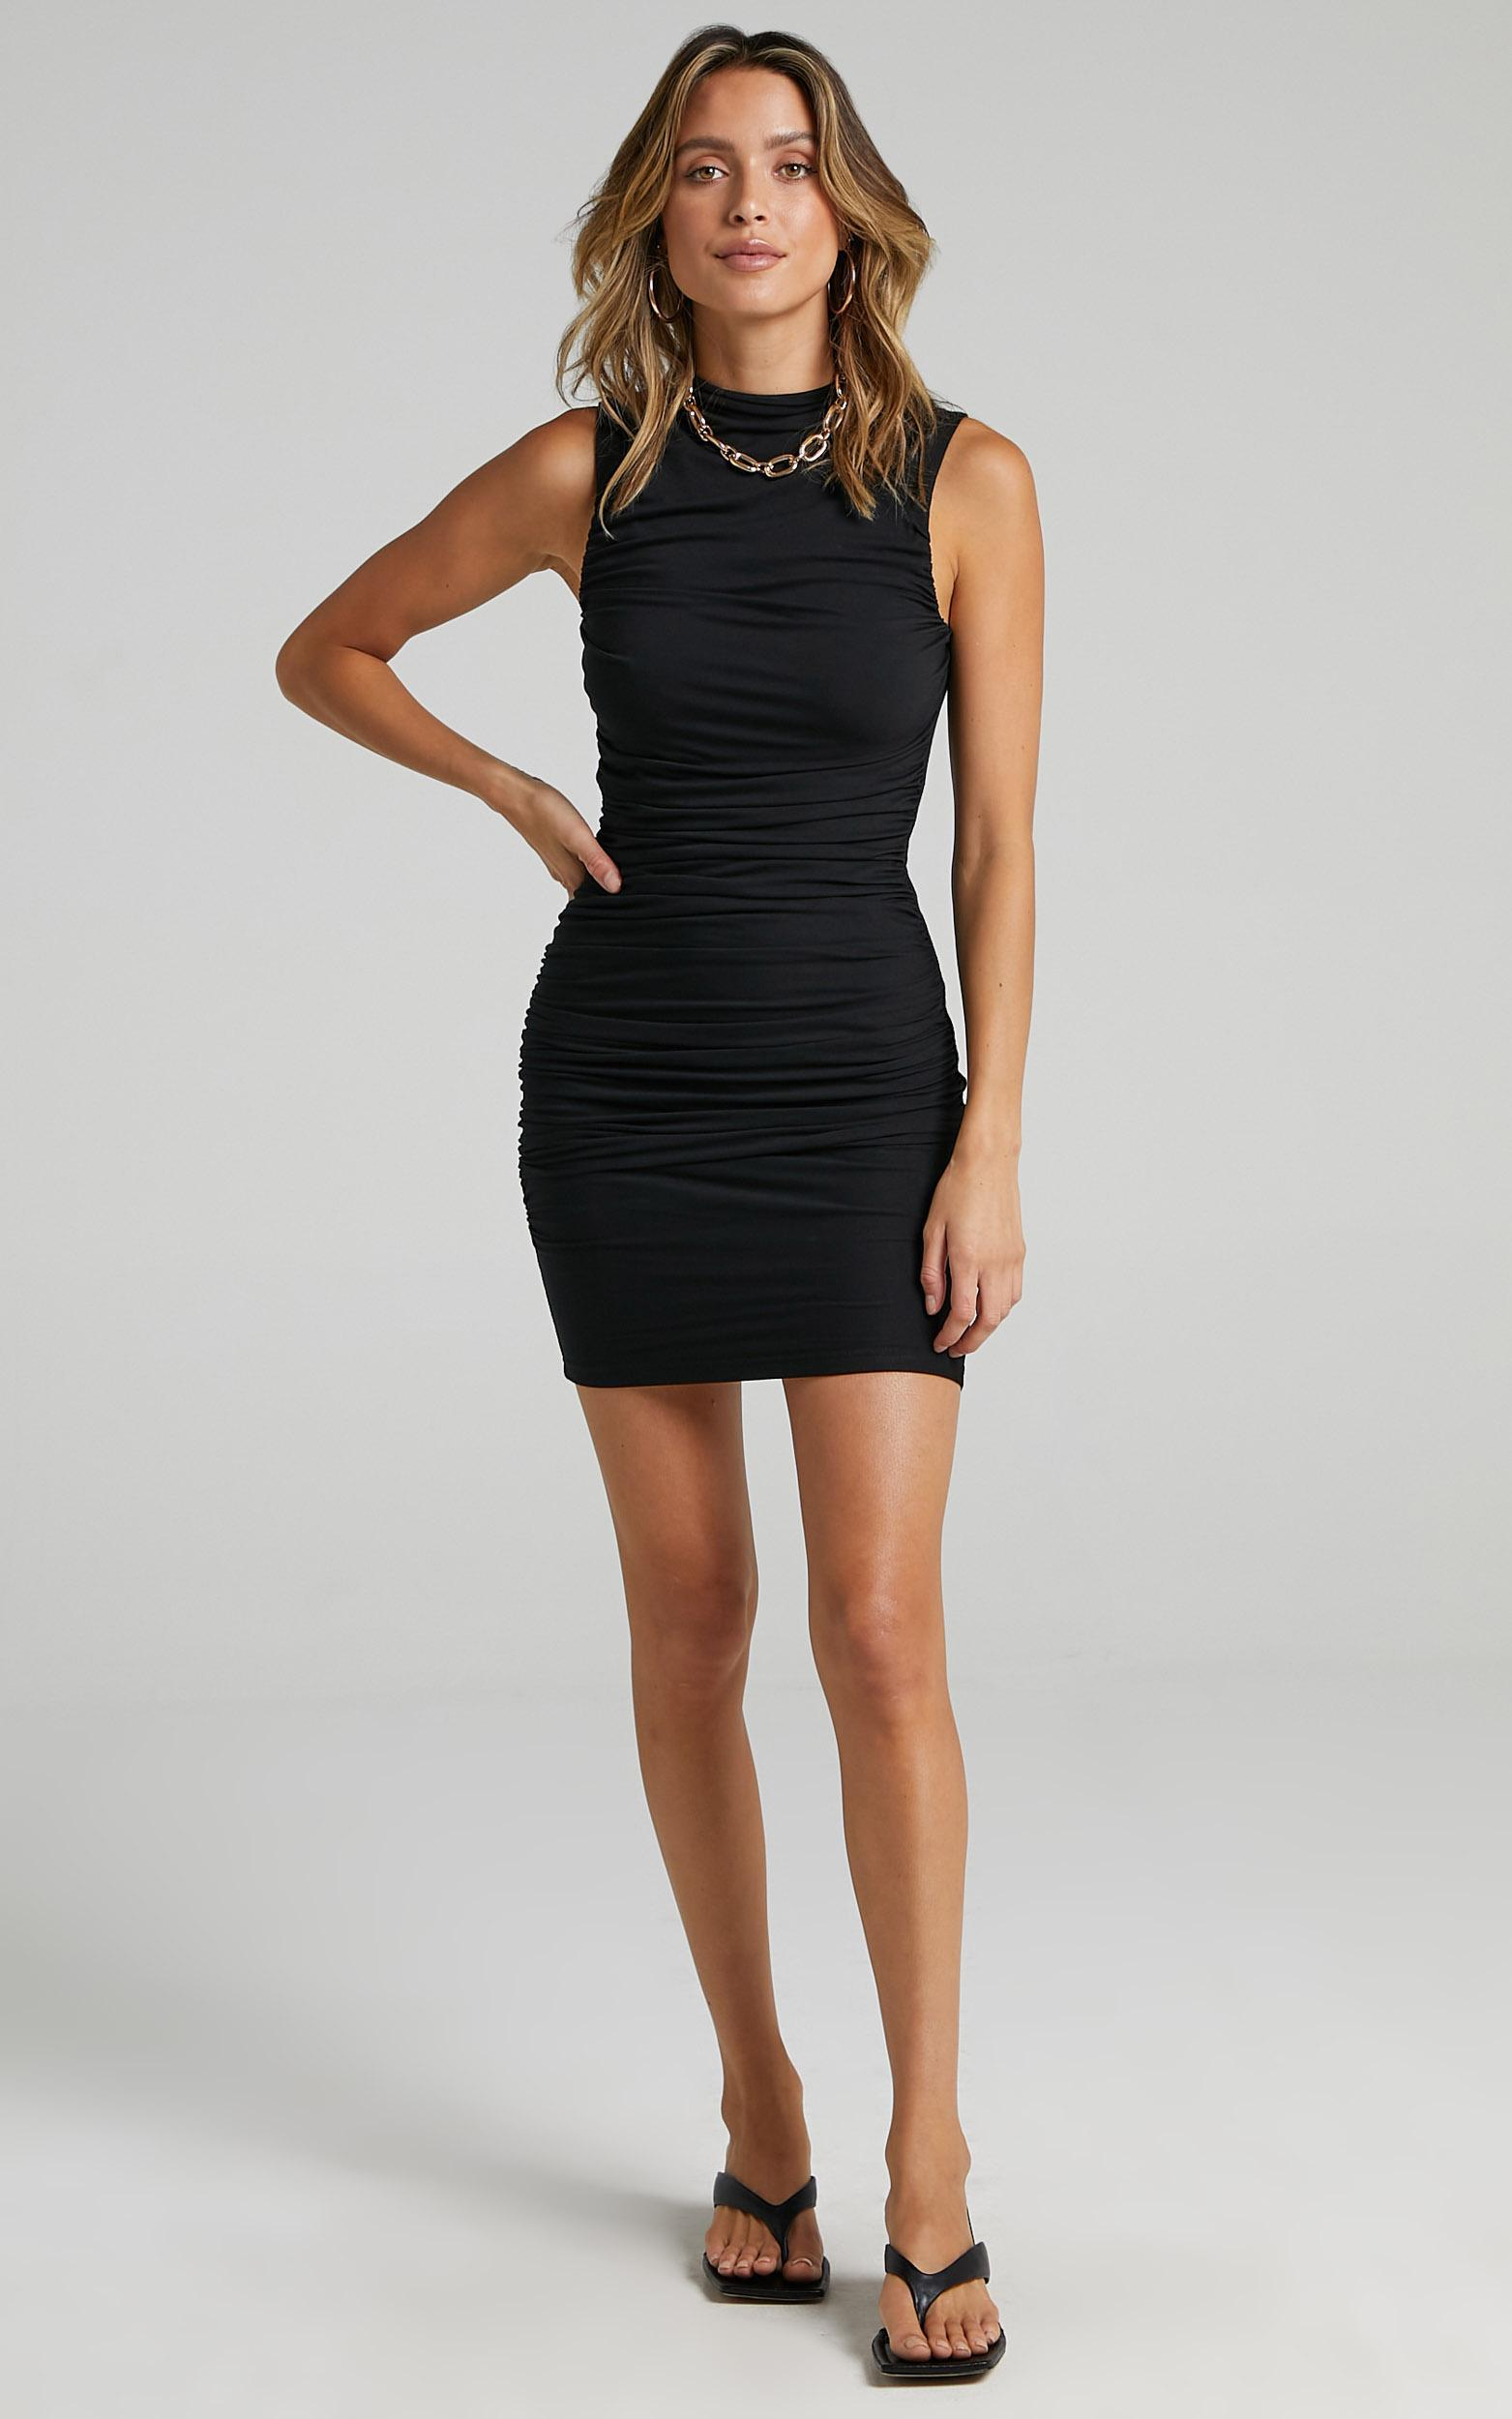 Lioness - Don`t Call Me Baby Mini Dress in Black - 06, BLK1, hi-res image number null